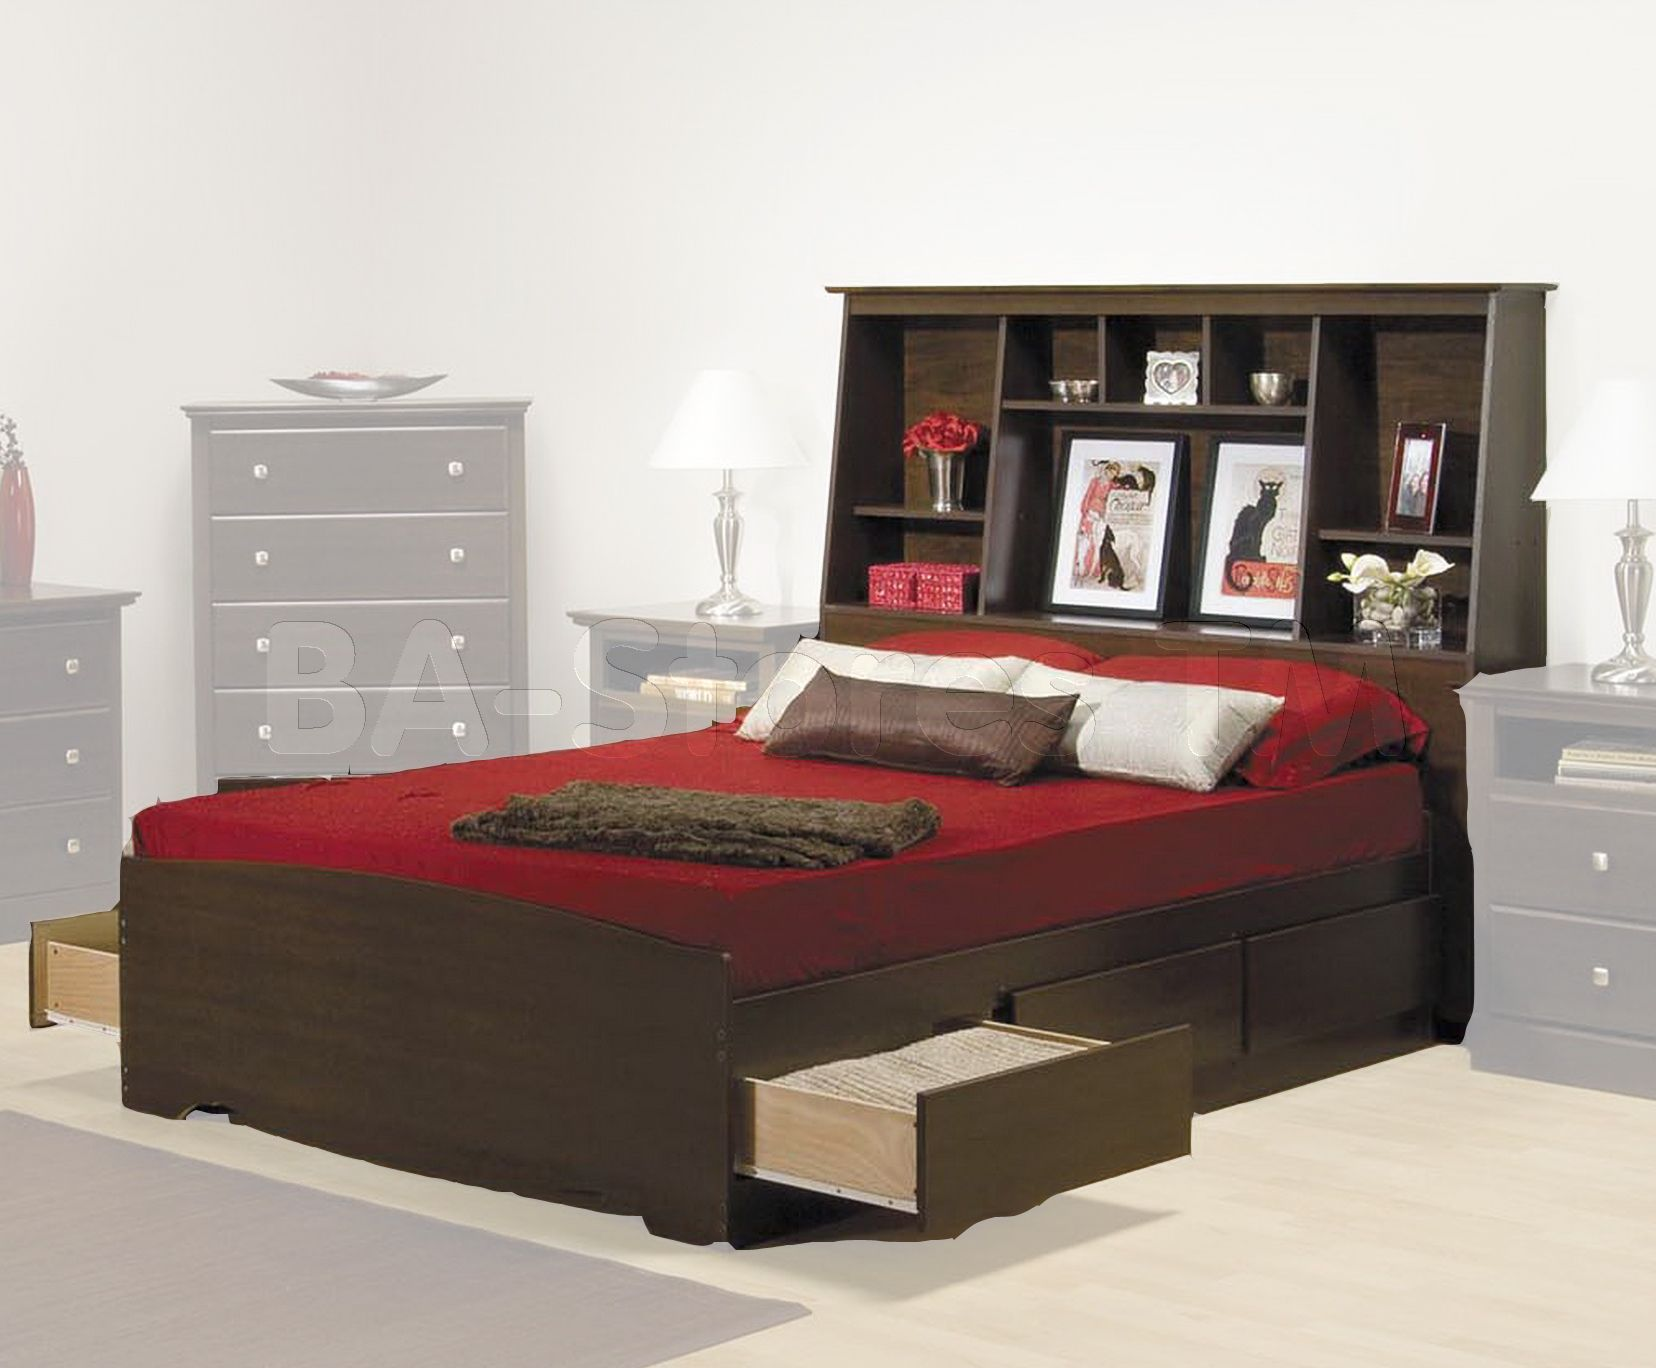 Prepac Fremont Platform Storage Bed with Bookcase Headboard in Espresso. Prepac Fremont Platform Storage Bed with Bookcase Headboard in